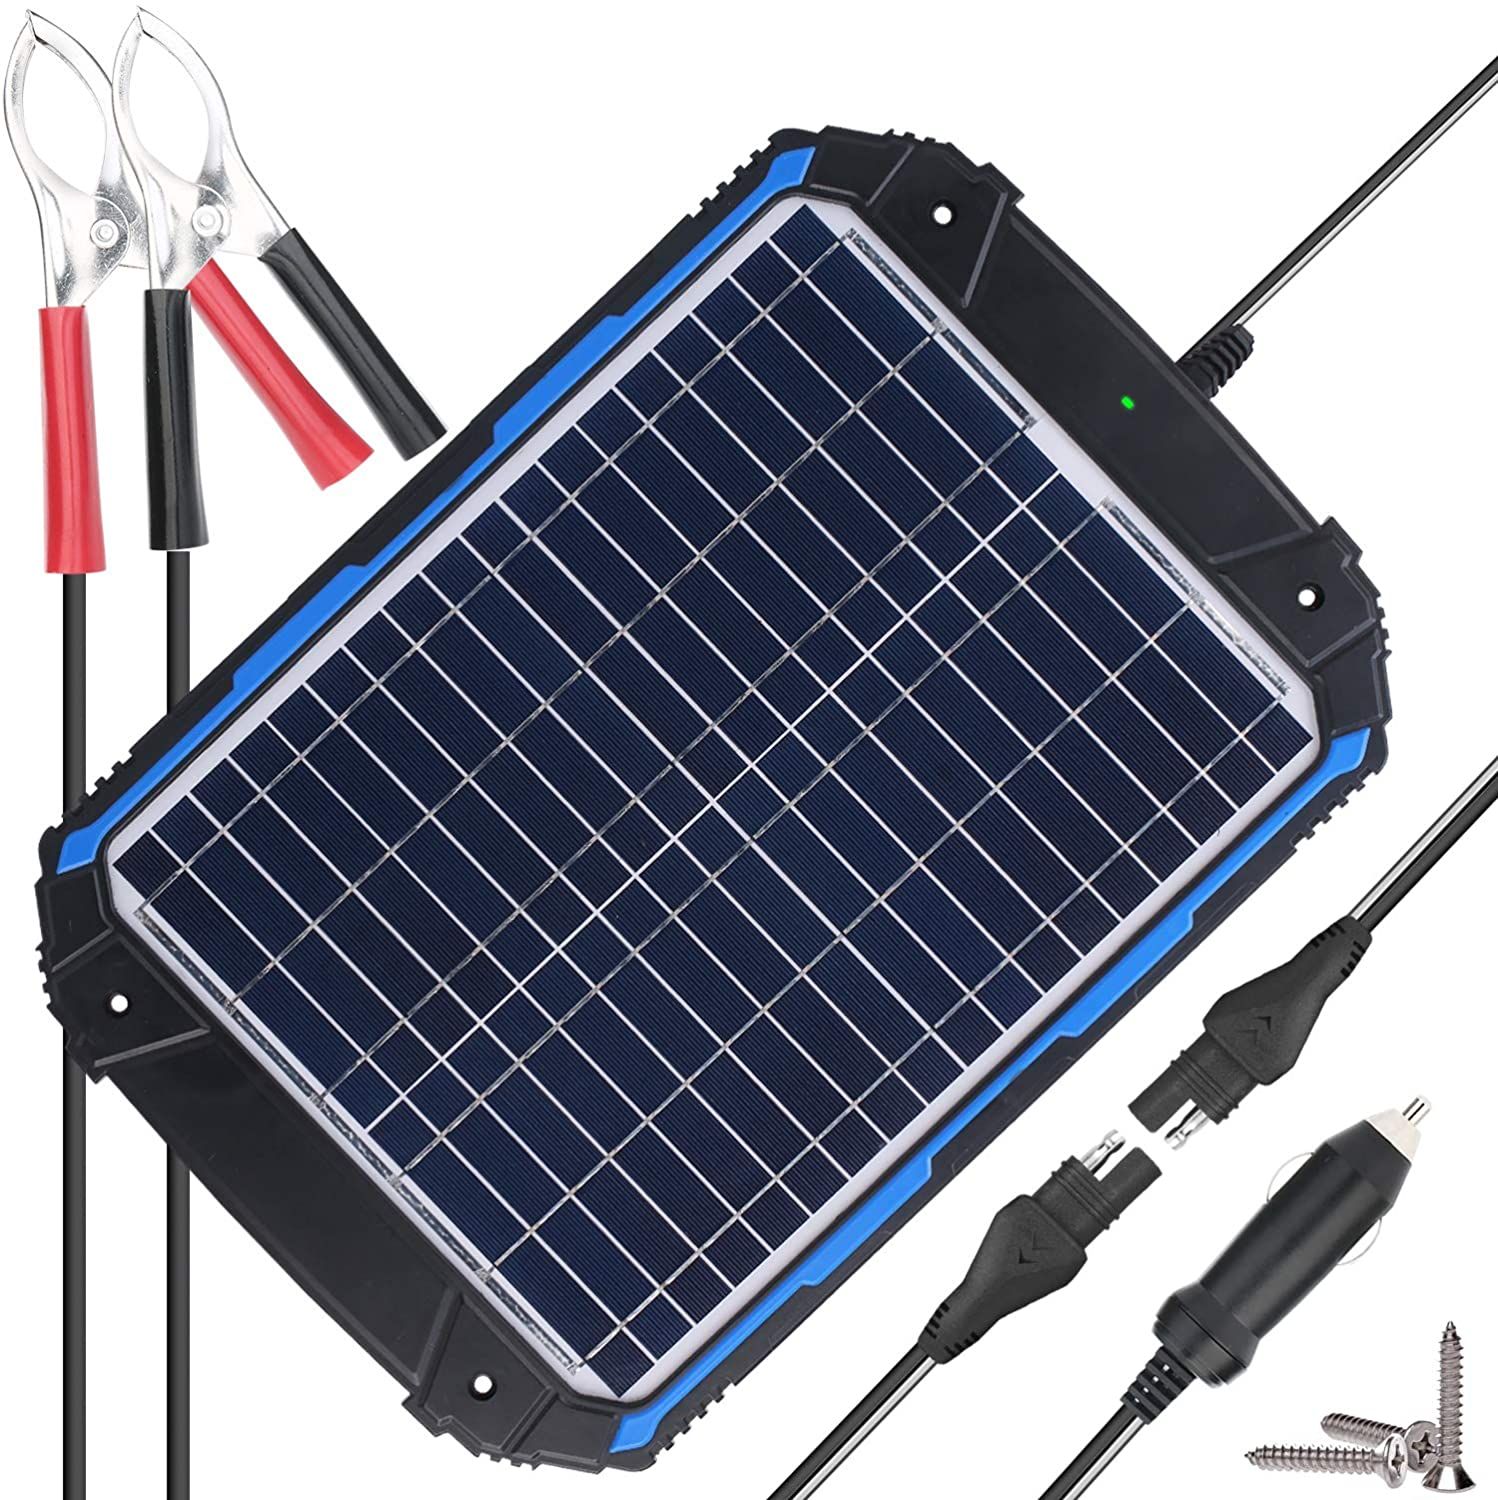 SUNER POWER Upgraded 12V Waterproof Solar Battery Charger Maintainer Pro – Built-in Intelligent MPPT Charge Controller – 18W Solar Panel Trickle Charging Kit for Car, Marine, Motorcycle, RV, etc